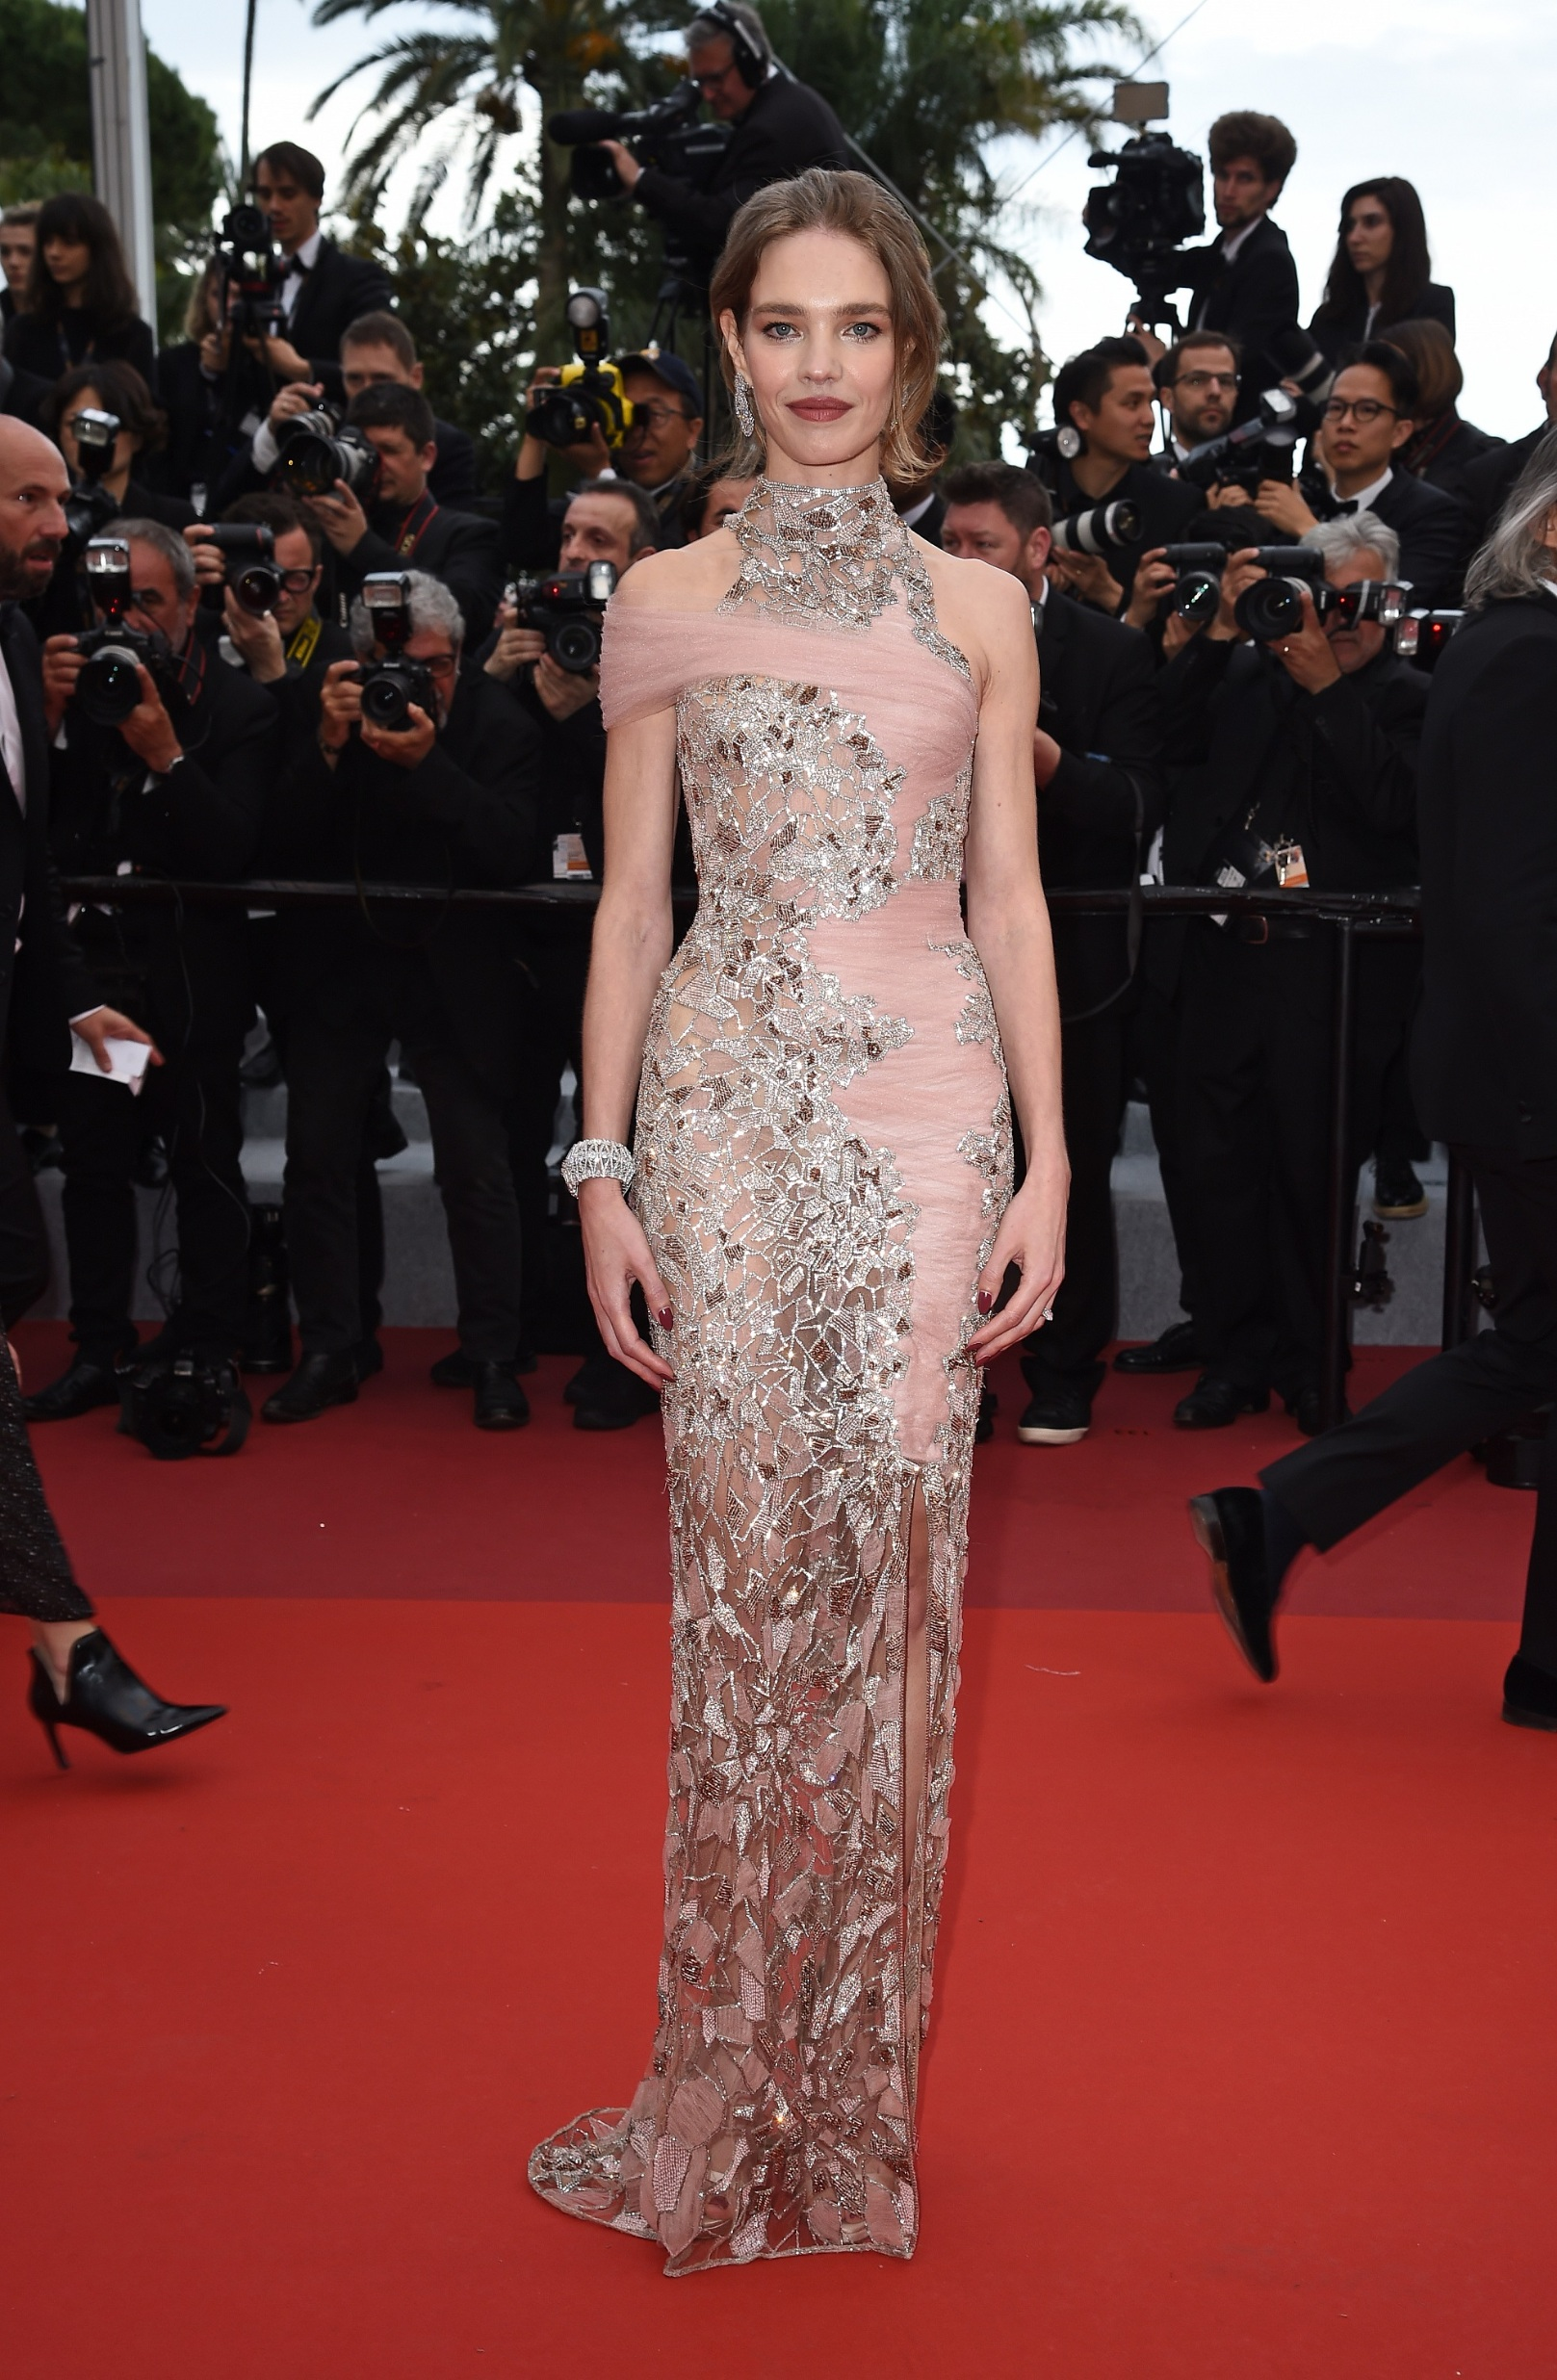 CANNES, FRANCE - MAY 20: Natalia Vodianova attends the screening of